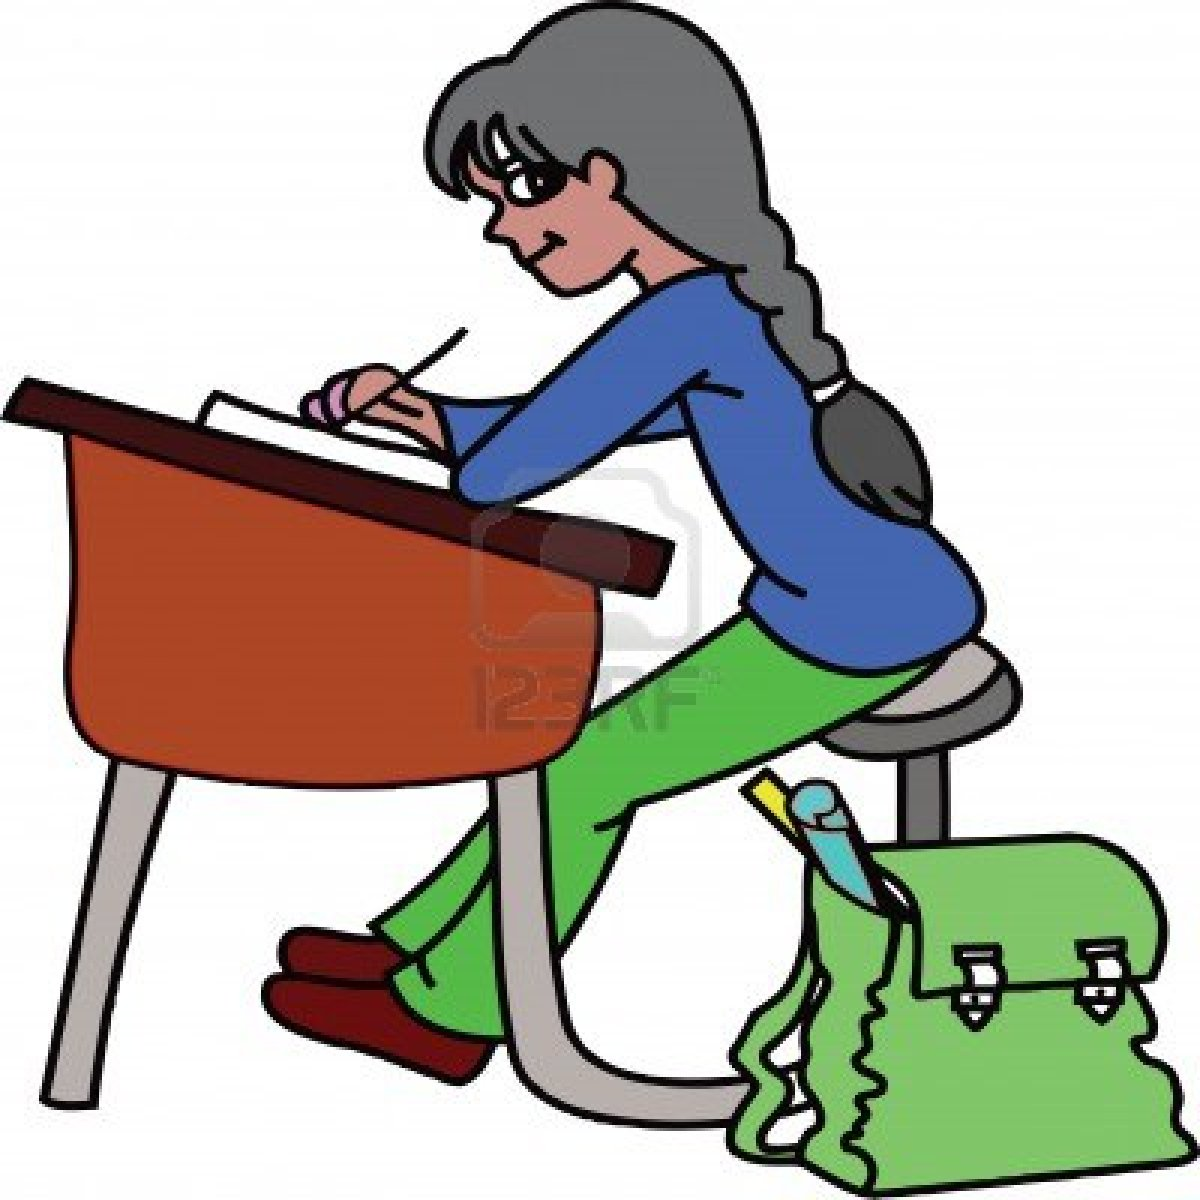 graphic free stock Student working hard clipart. Free download best .